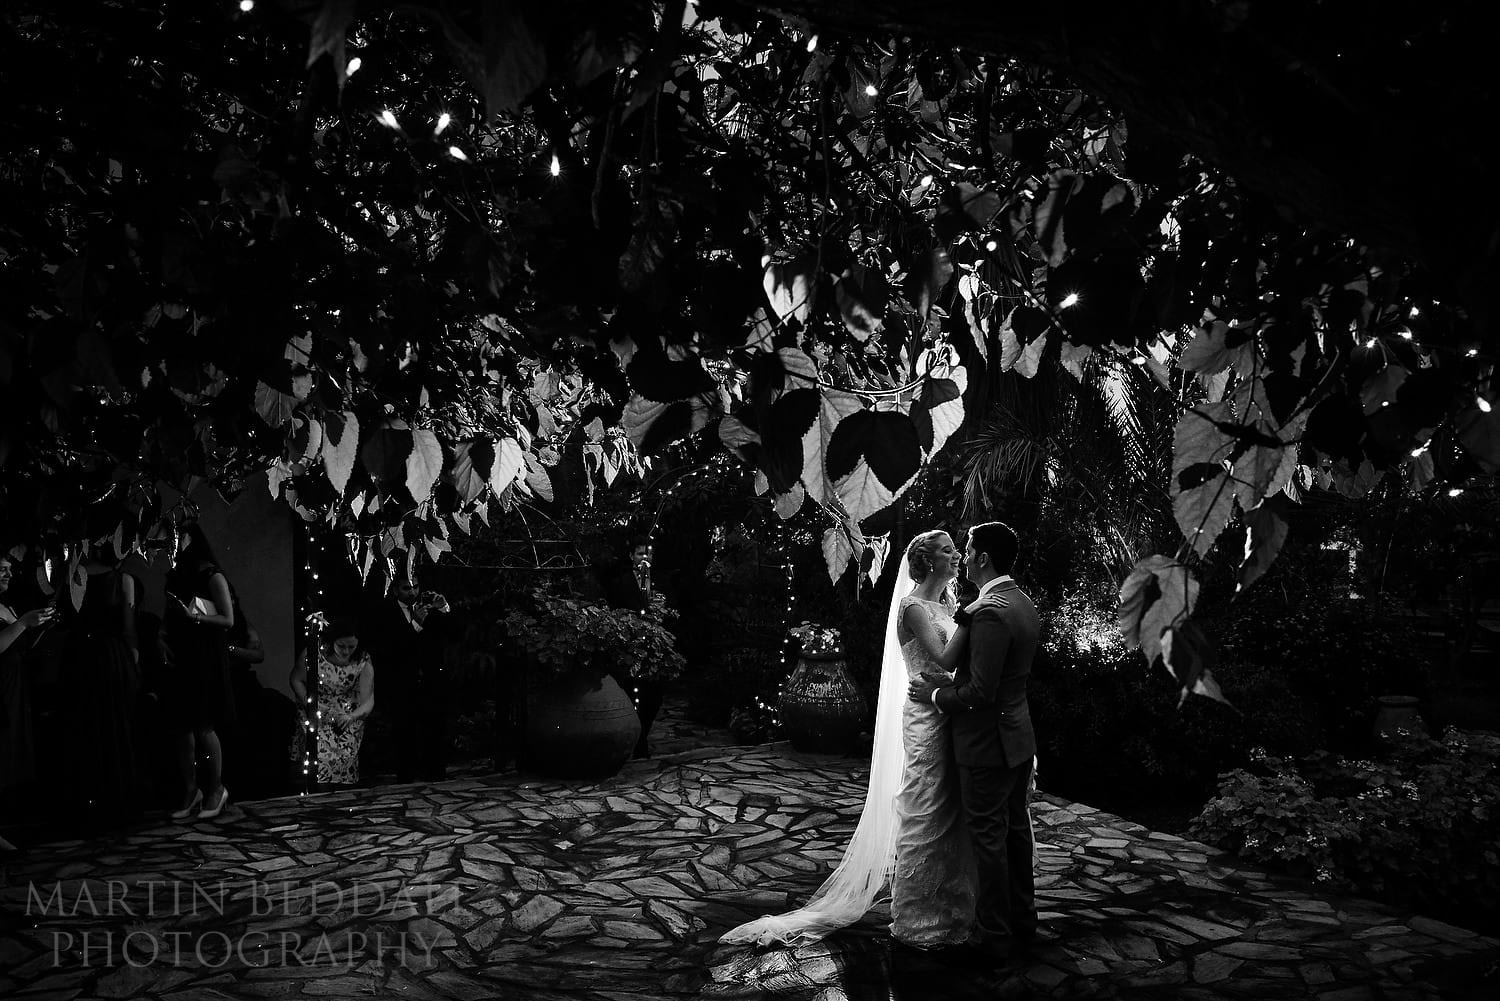 First dance in the open air at Bellapais Abbey wedding